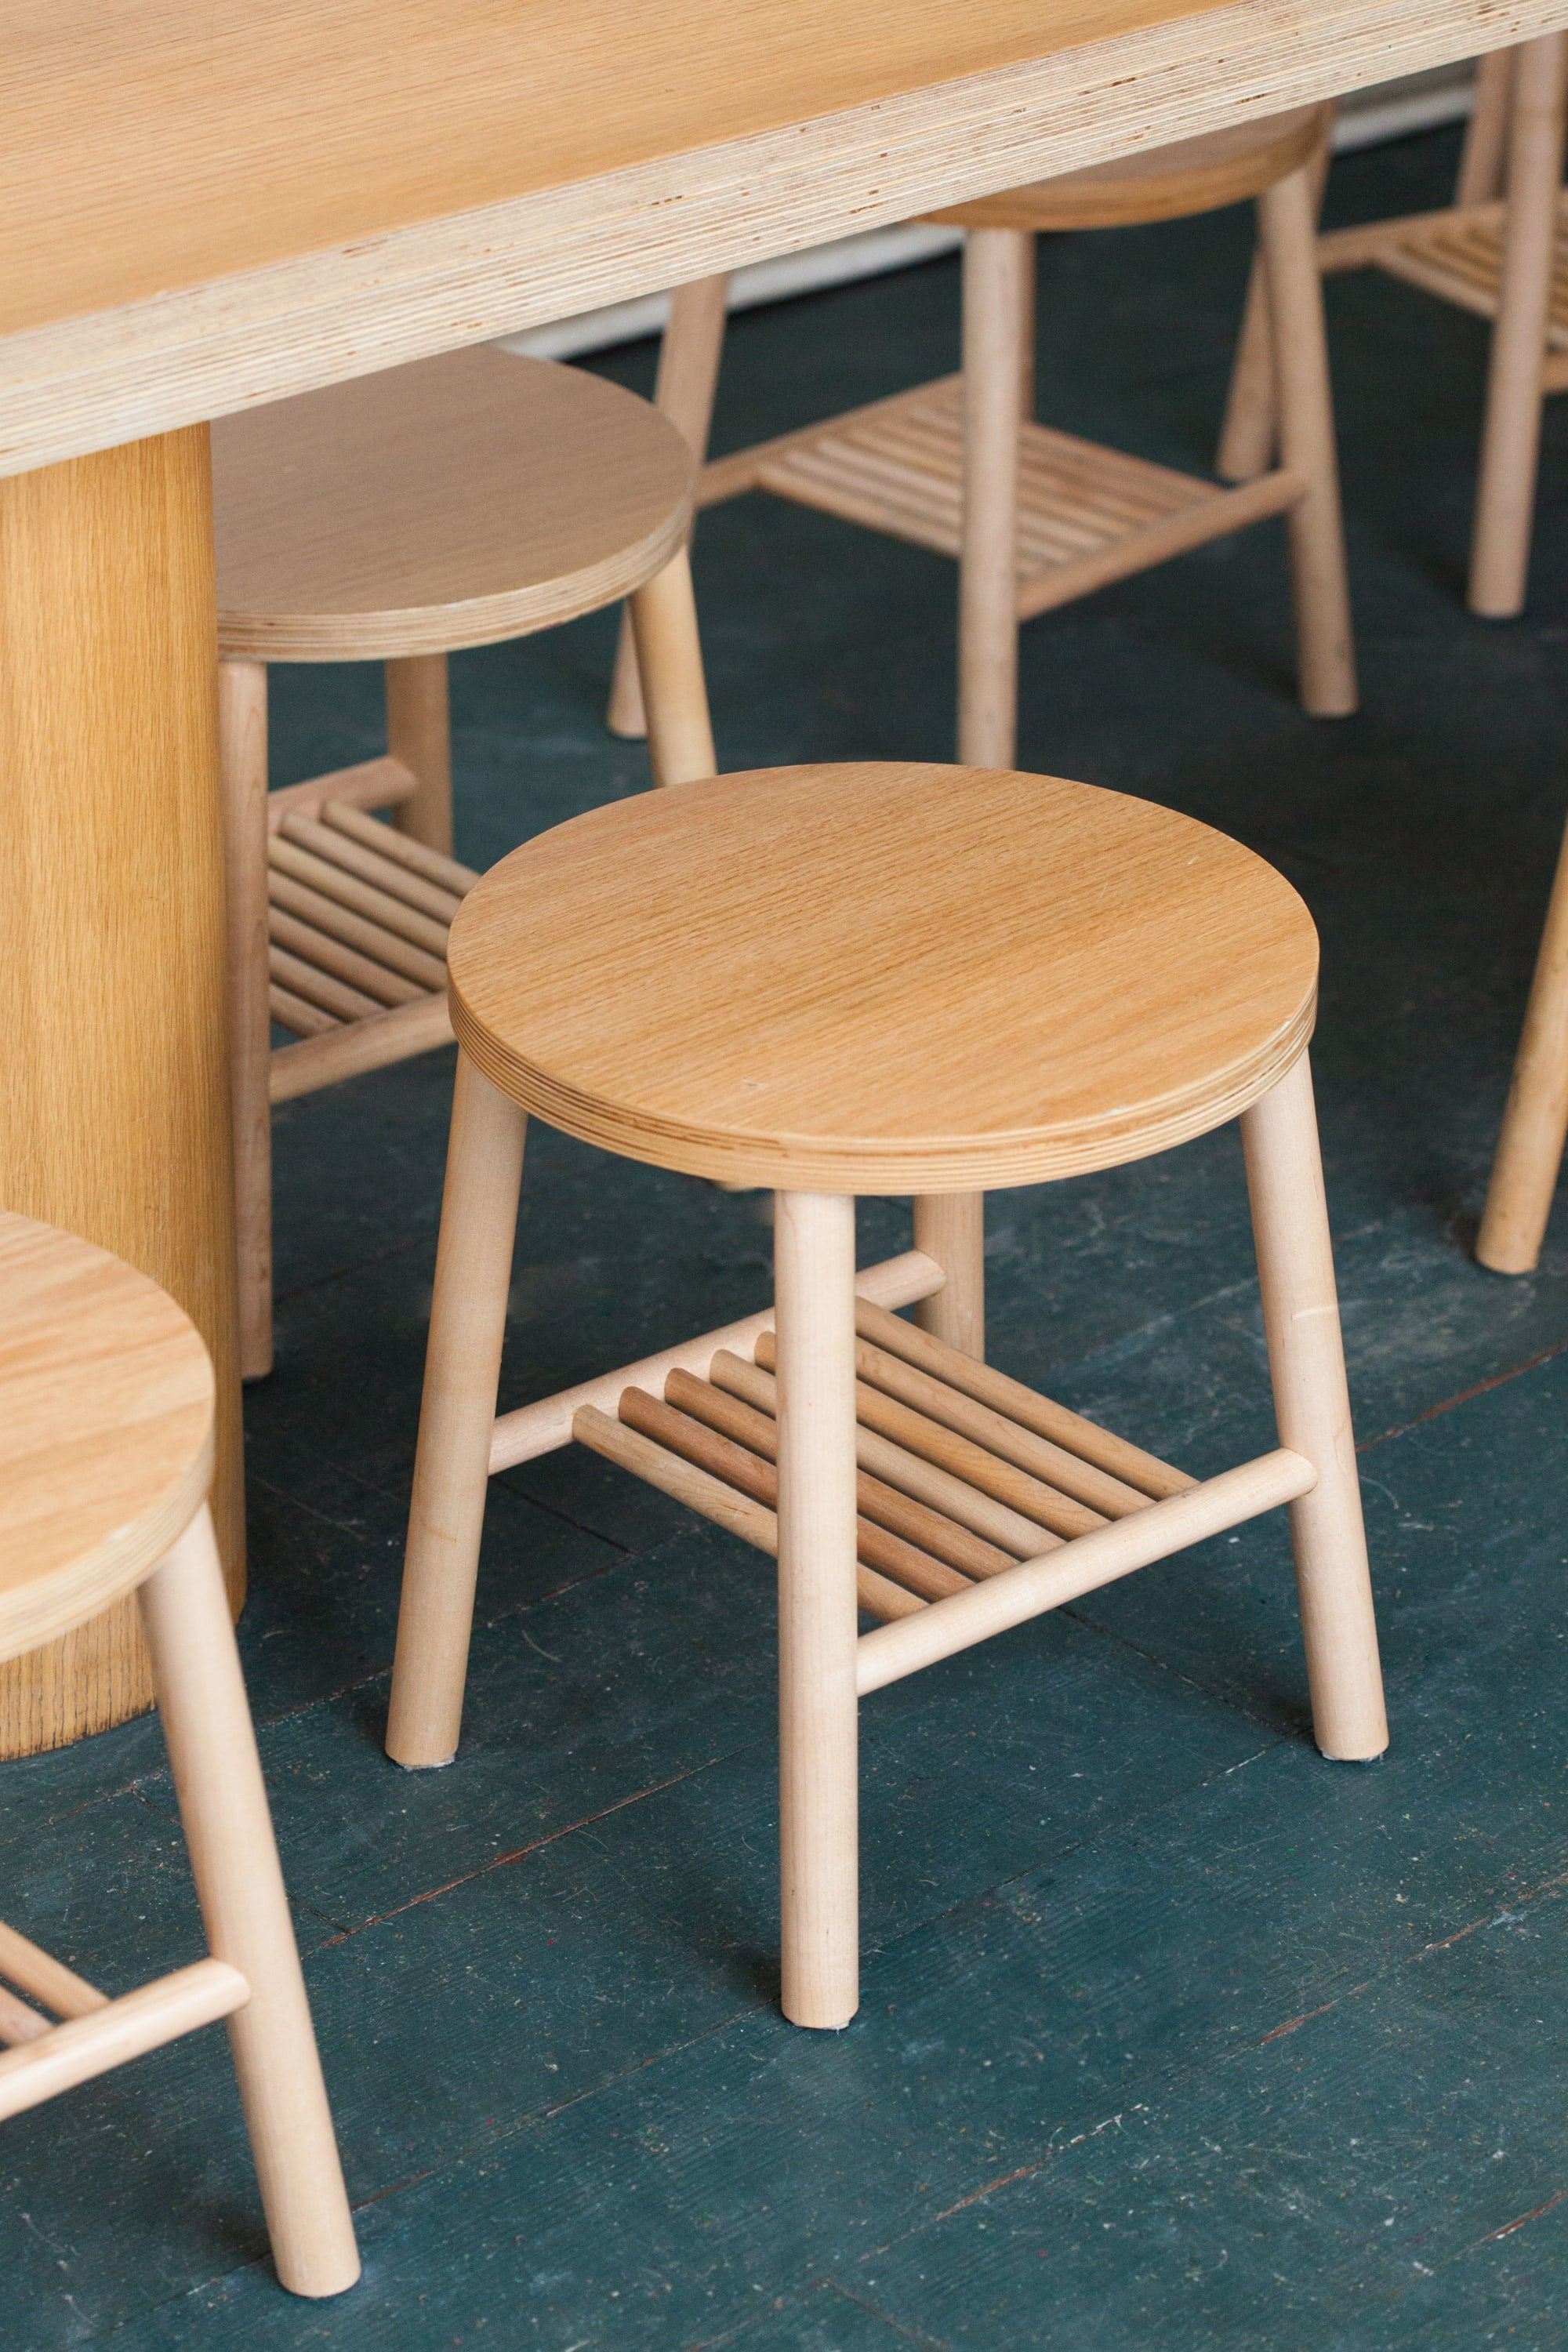 Chairs by Vaste seen at 386 Avenue Beaumont, Montréal - Tame stools